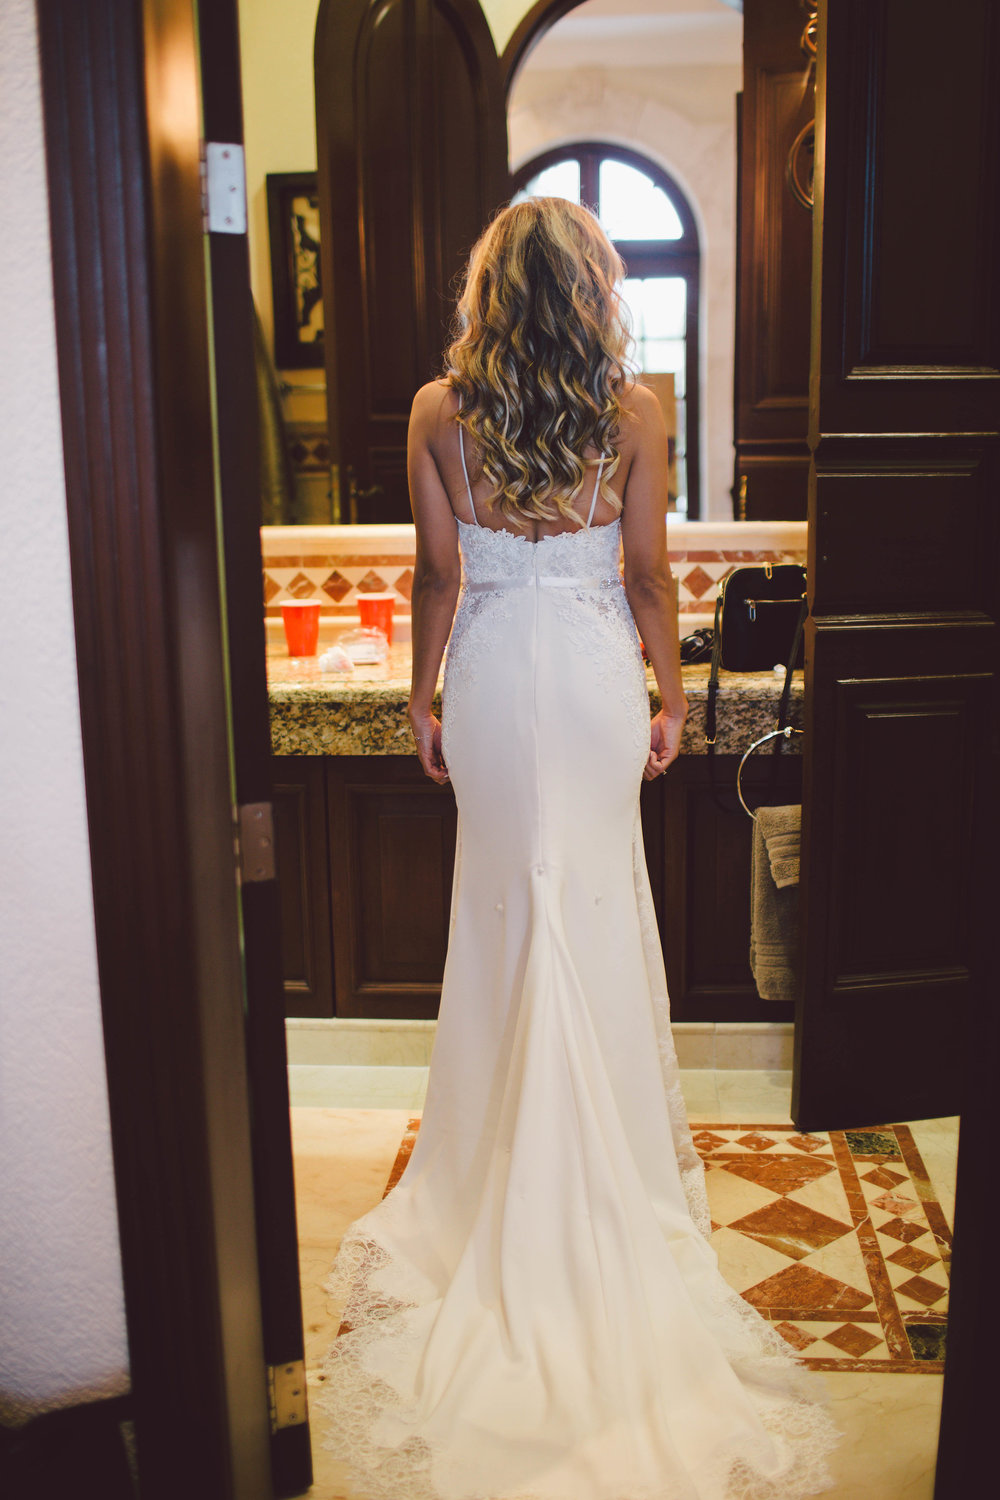 mexico_wedding_cancun_villa_la_joya_evangeline_lane_029.jpg